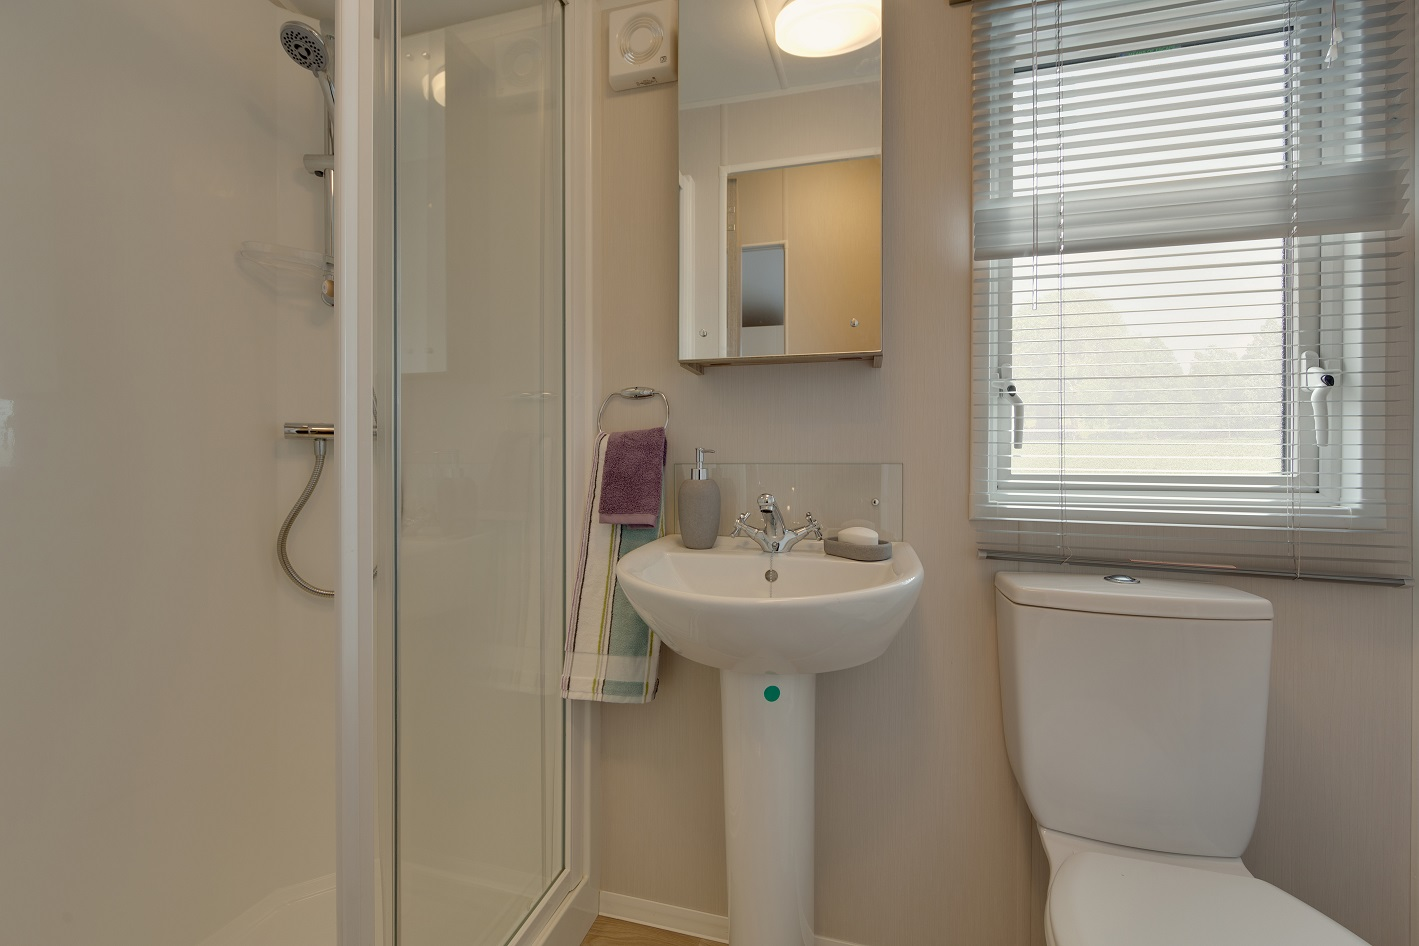 Willerby Skye - 3 Bedrooms: New Static Caravans and Holiday Homes for Sale, Clifton, Morpeth Image 4